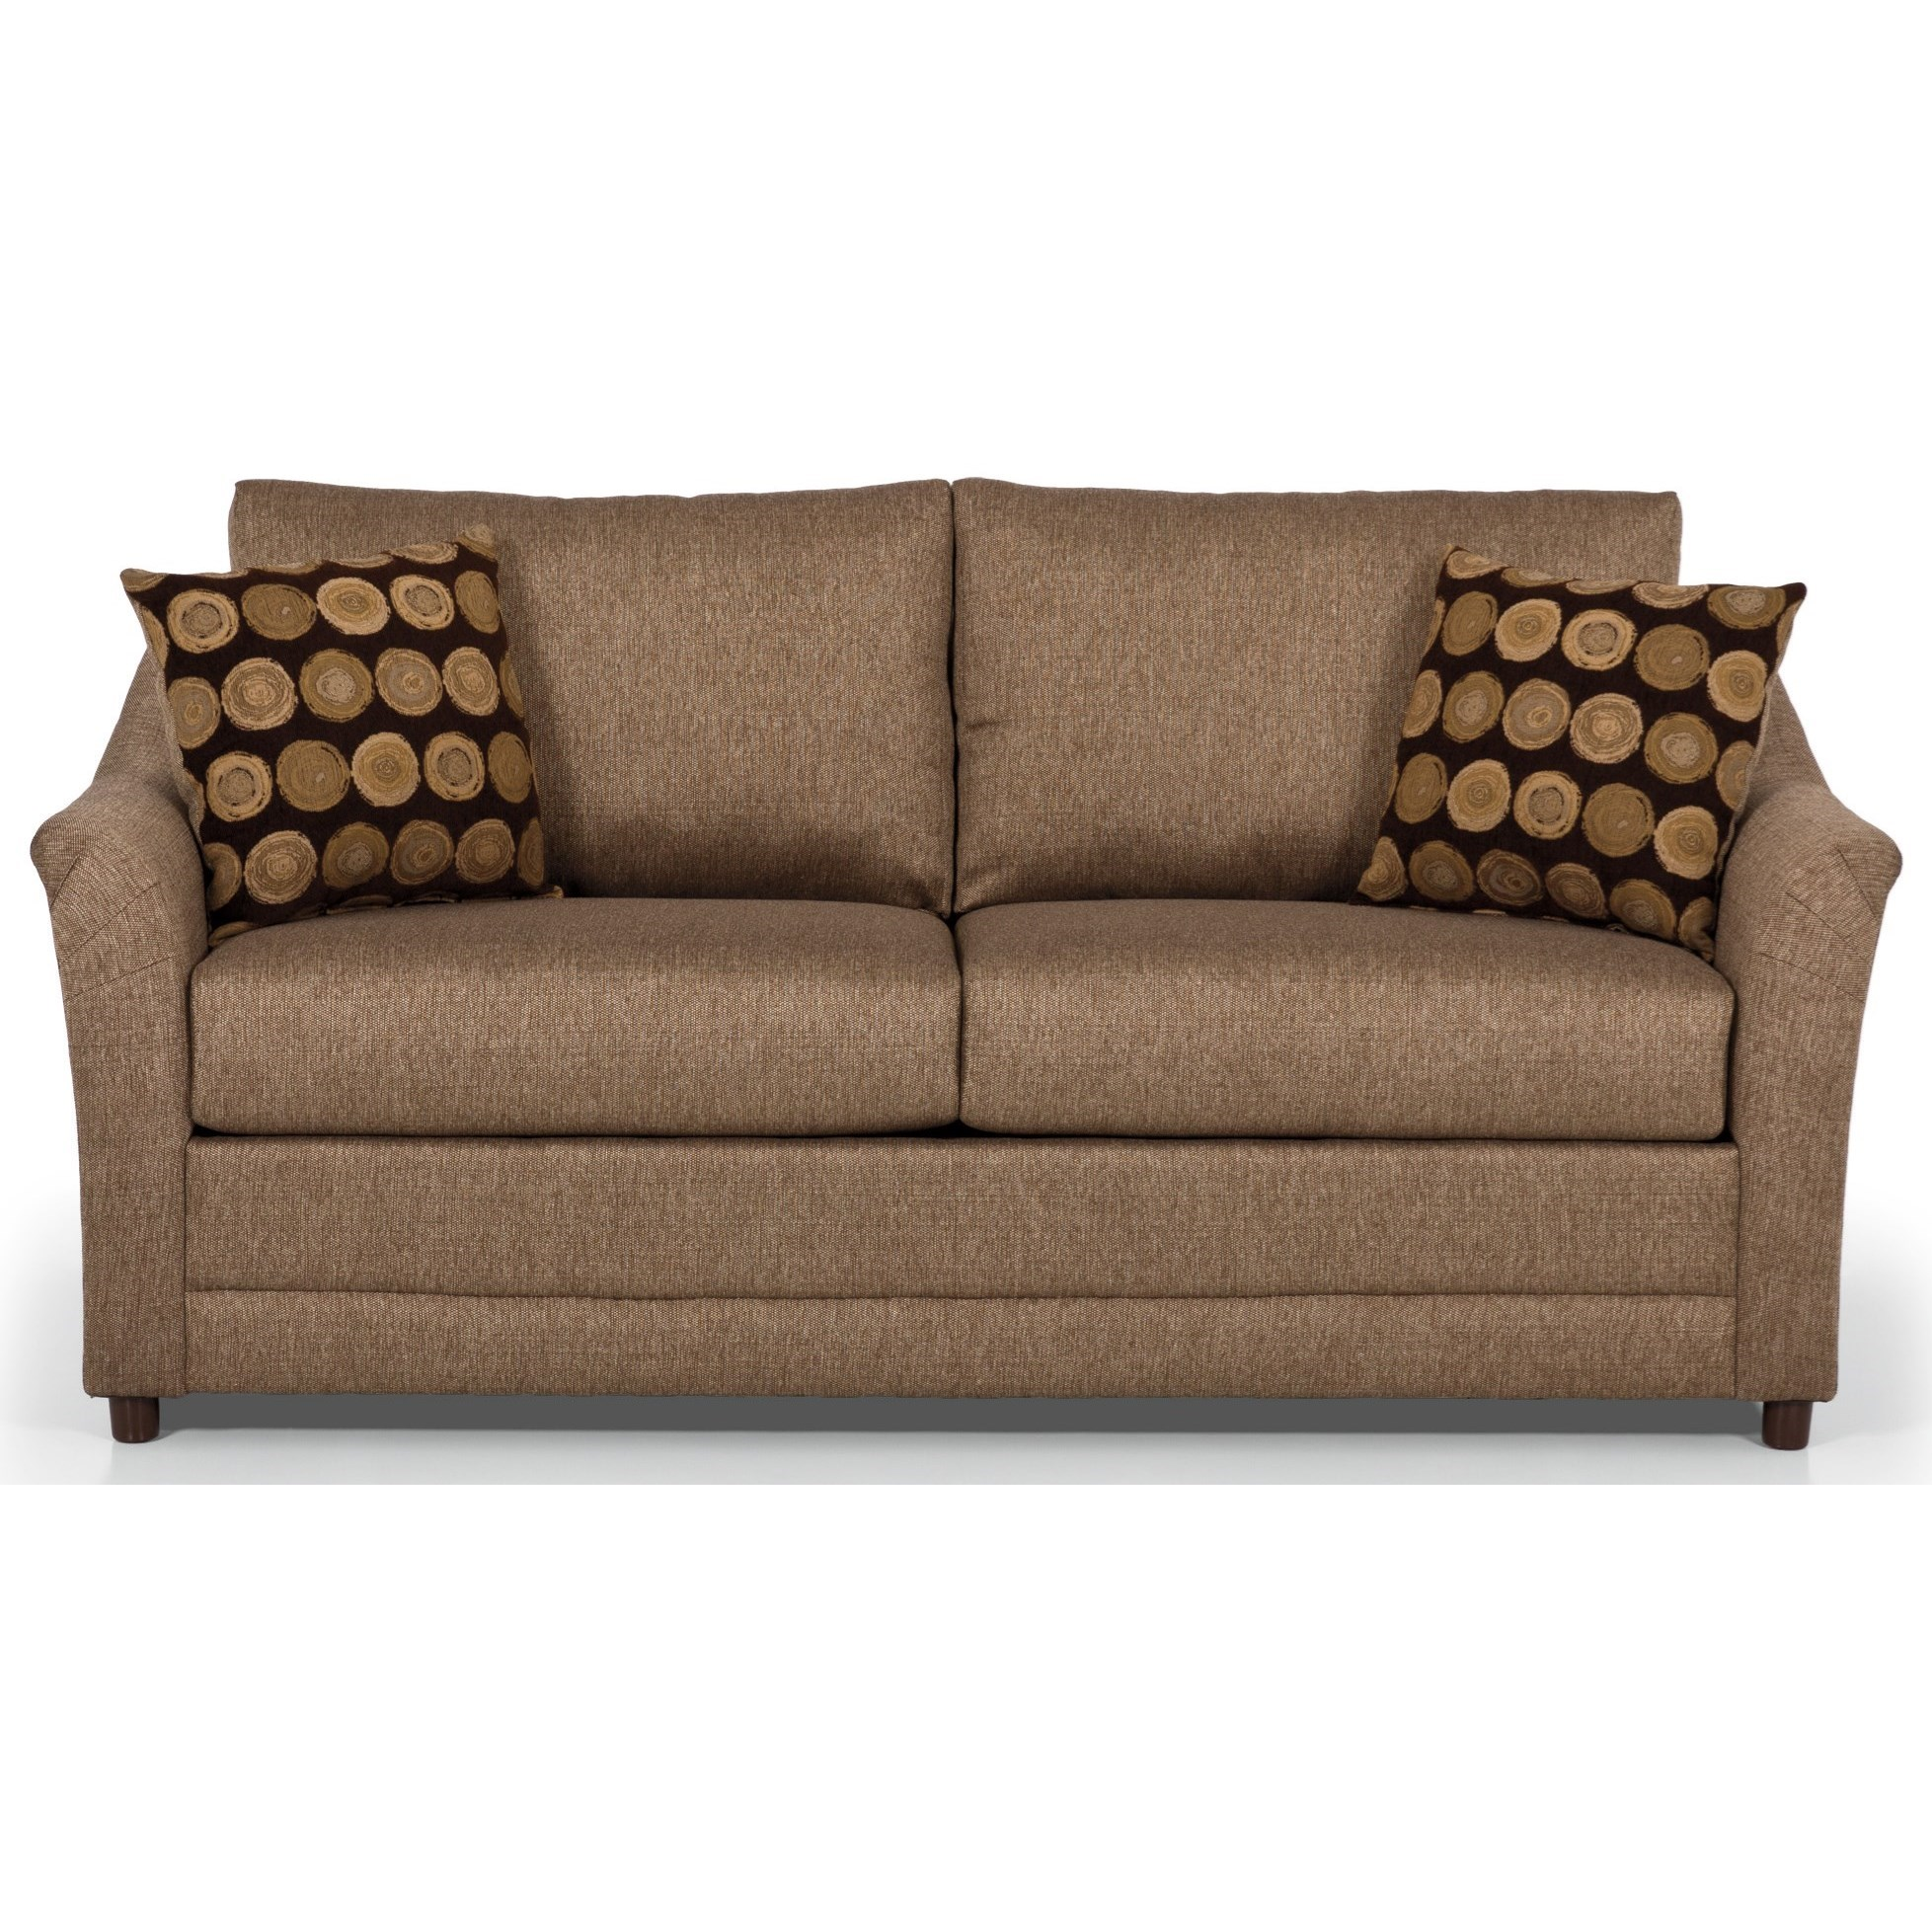 201 Sofa by Stanton at Wilson's Furniture